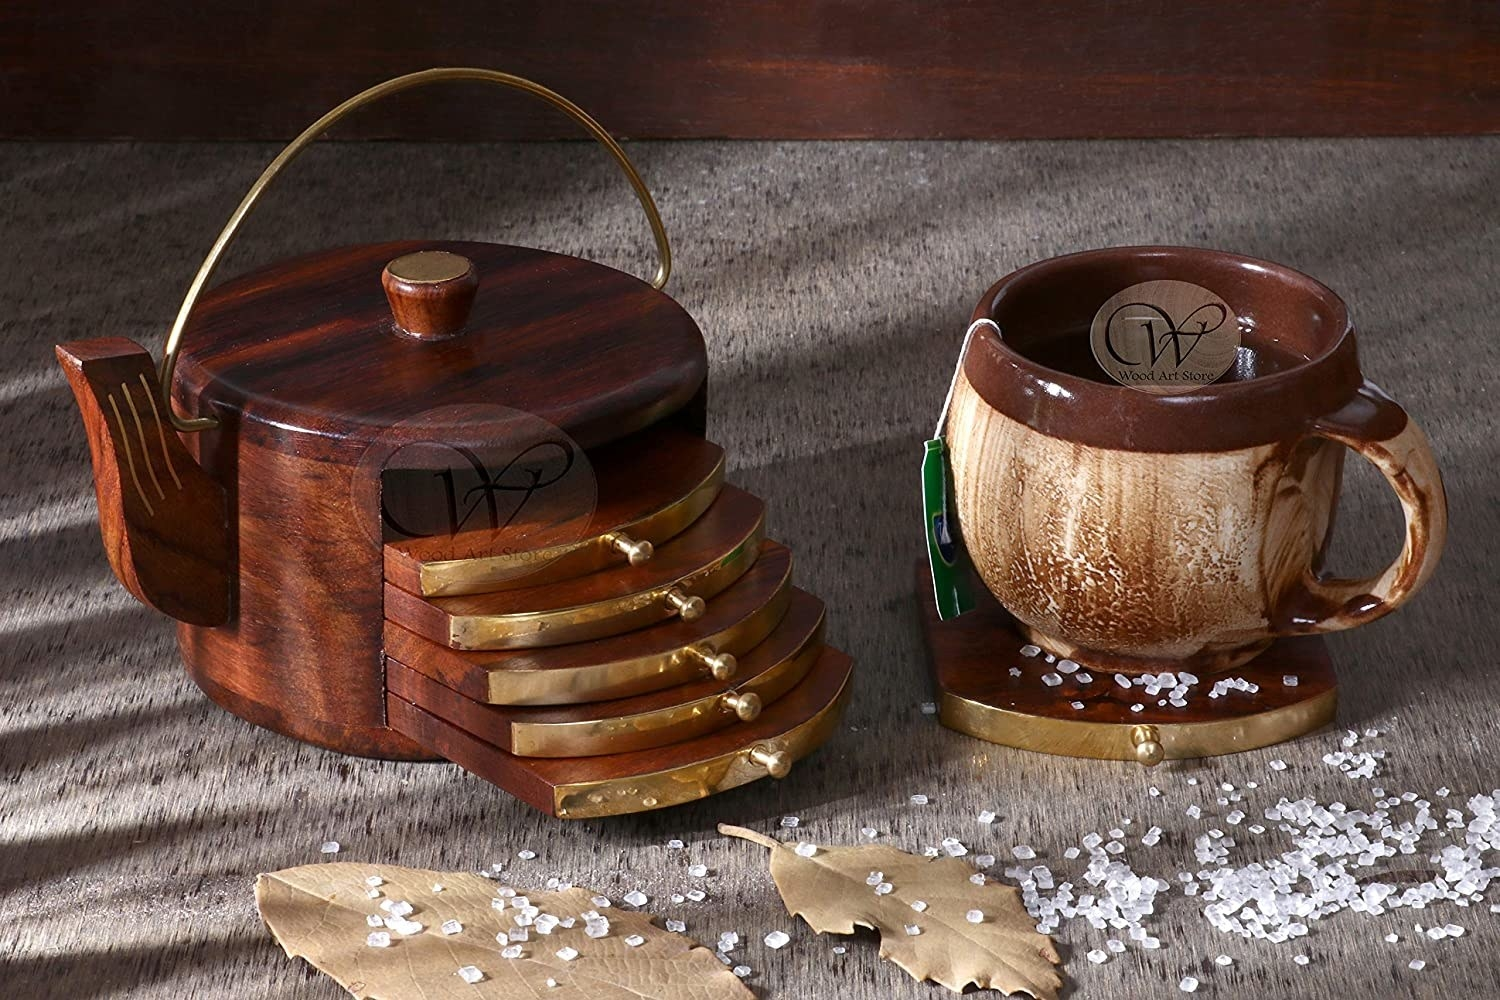 Wooden coasters kept in a kettle-shaped holder and a cup of tea placed on the side.